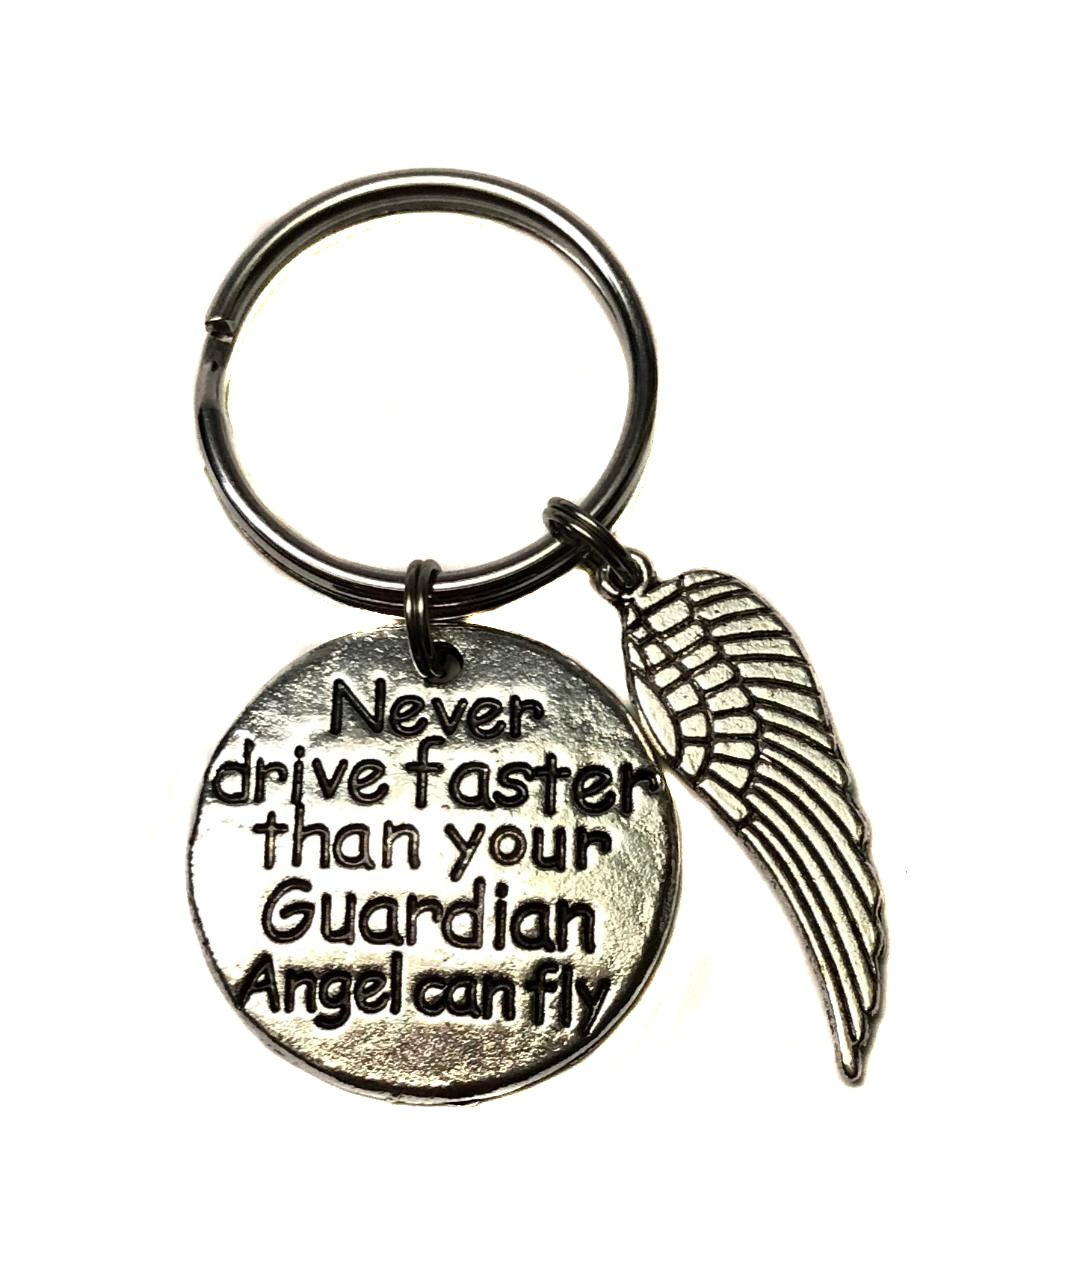 Heart Projects Never Drive Faster Than Your Guardian Angel Can Fly Angel Wing Charm Keychain, Bag Charm, Zipper Pull New Driver Sweet 16 Gift